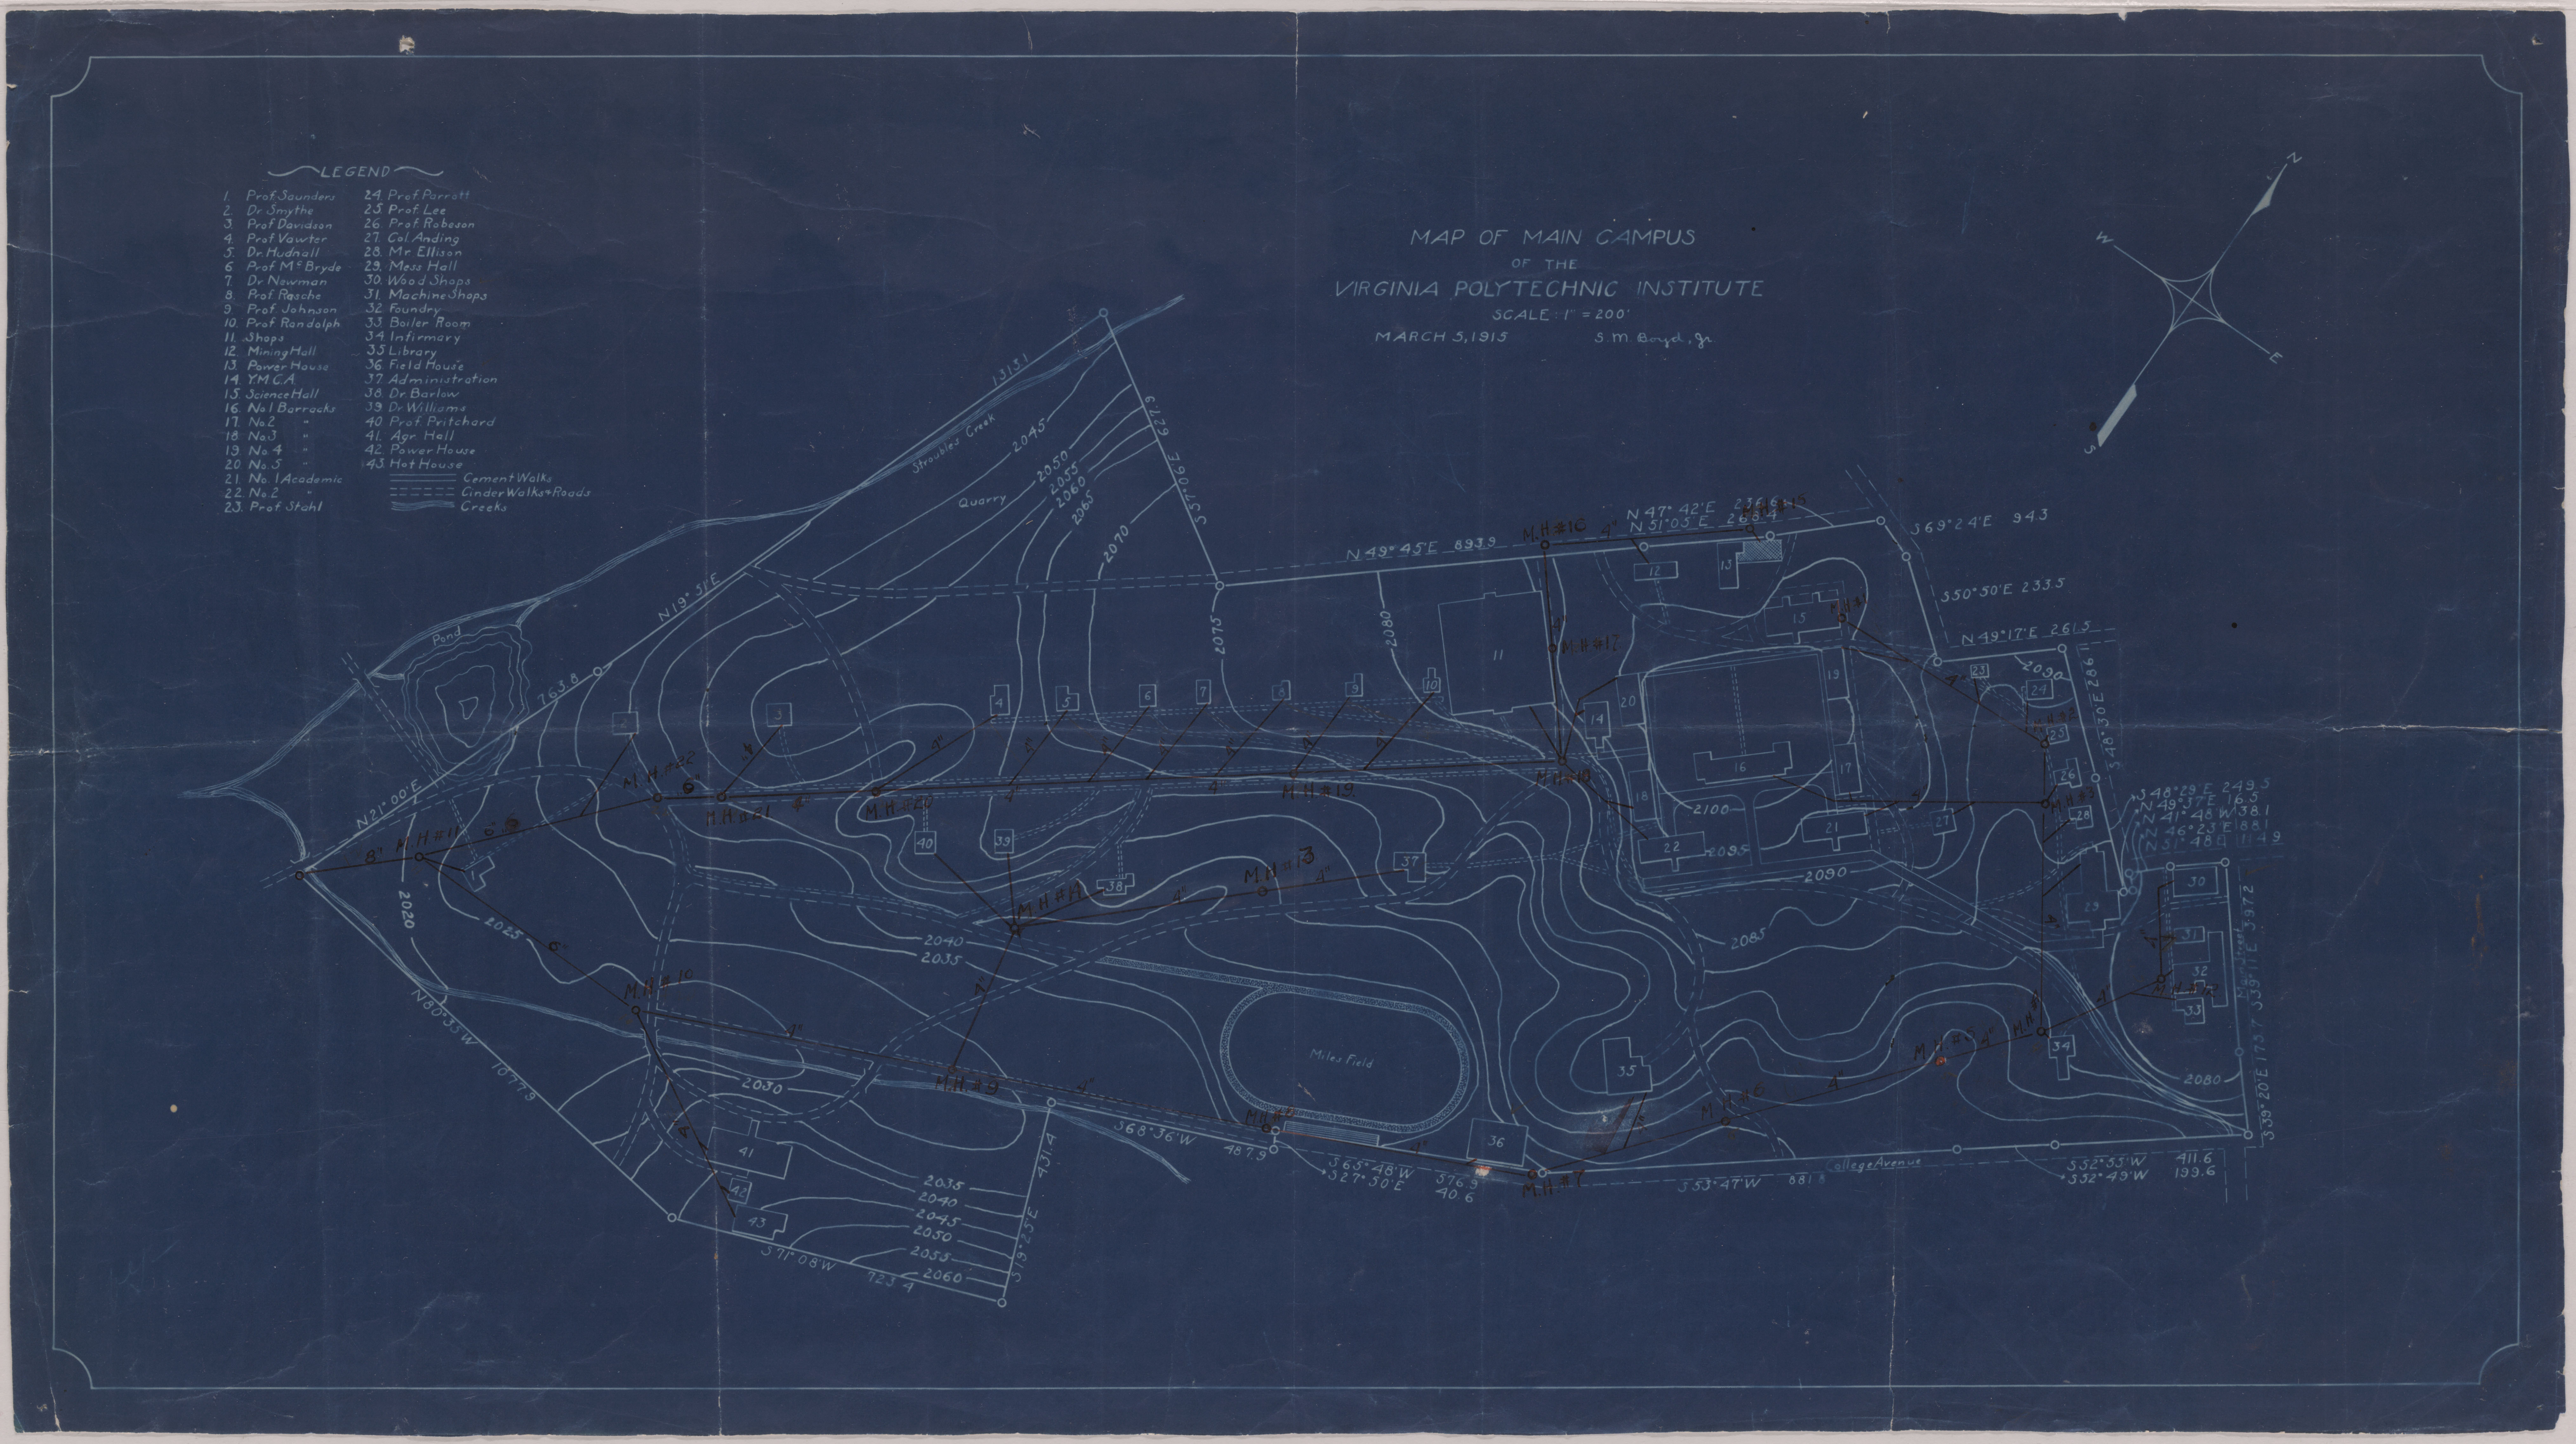 Map of Virginia Polytechnic Institute, 1915